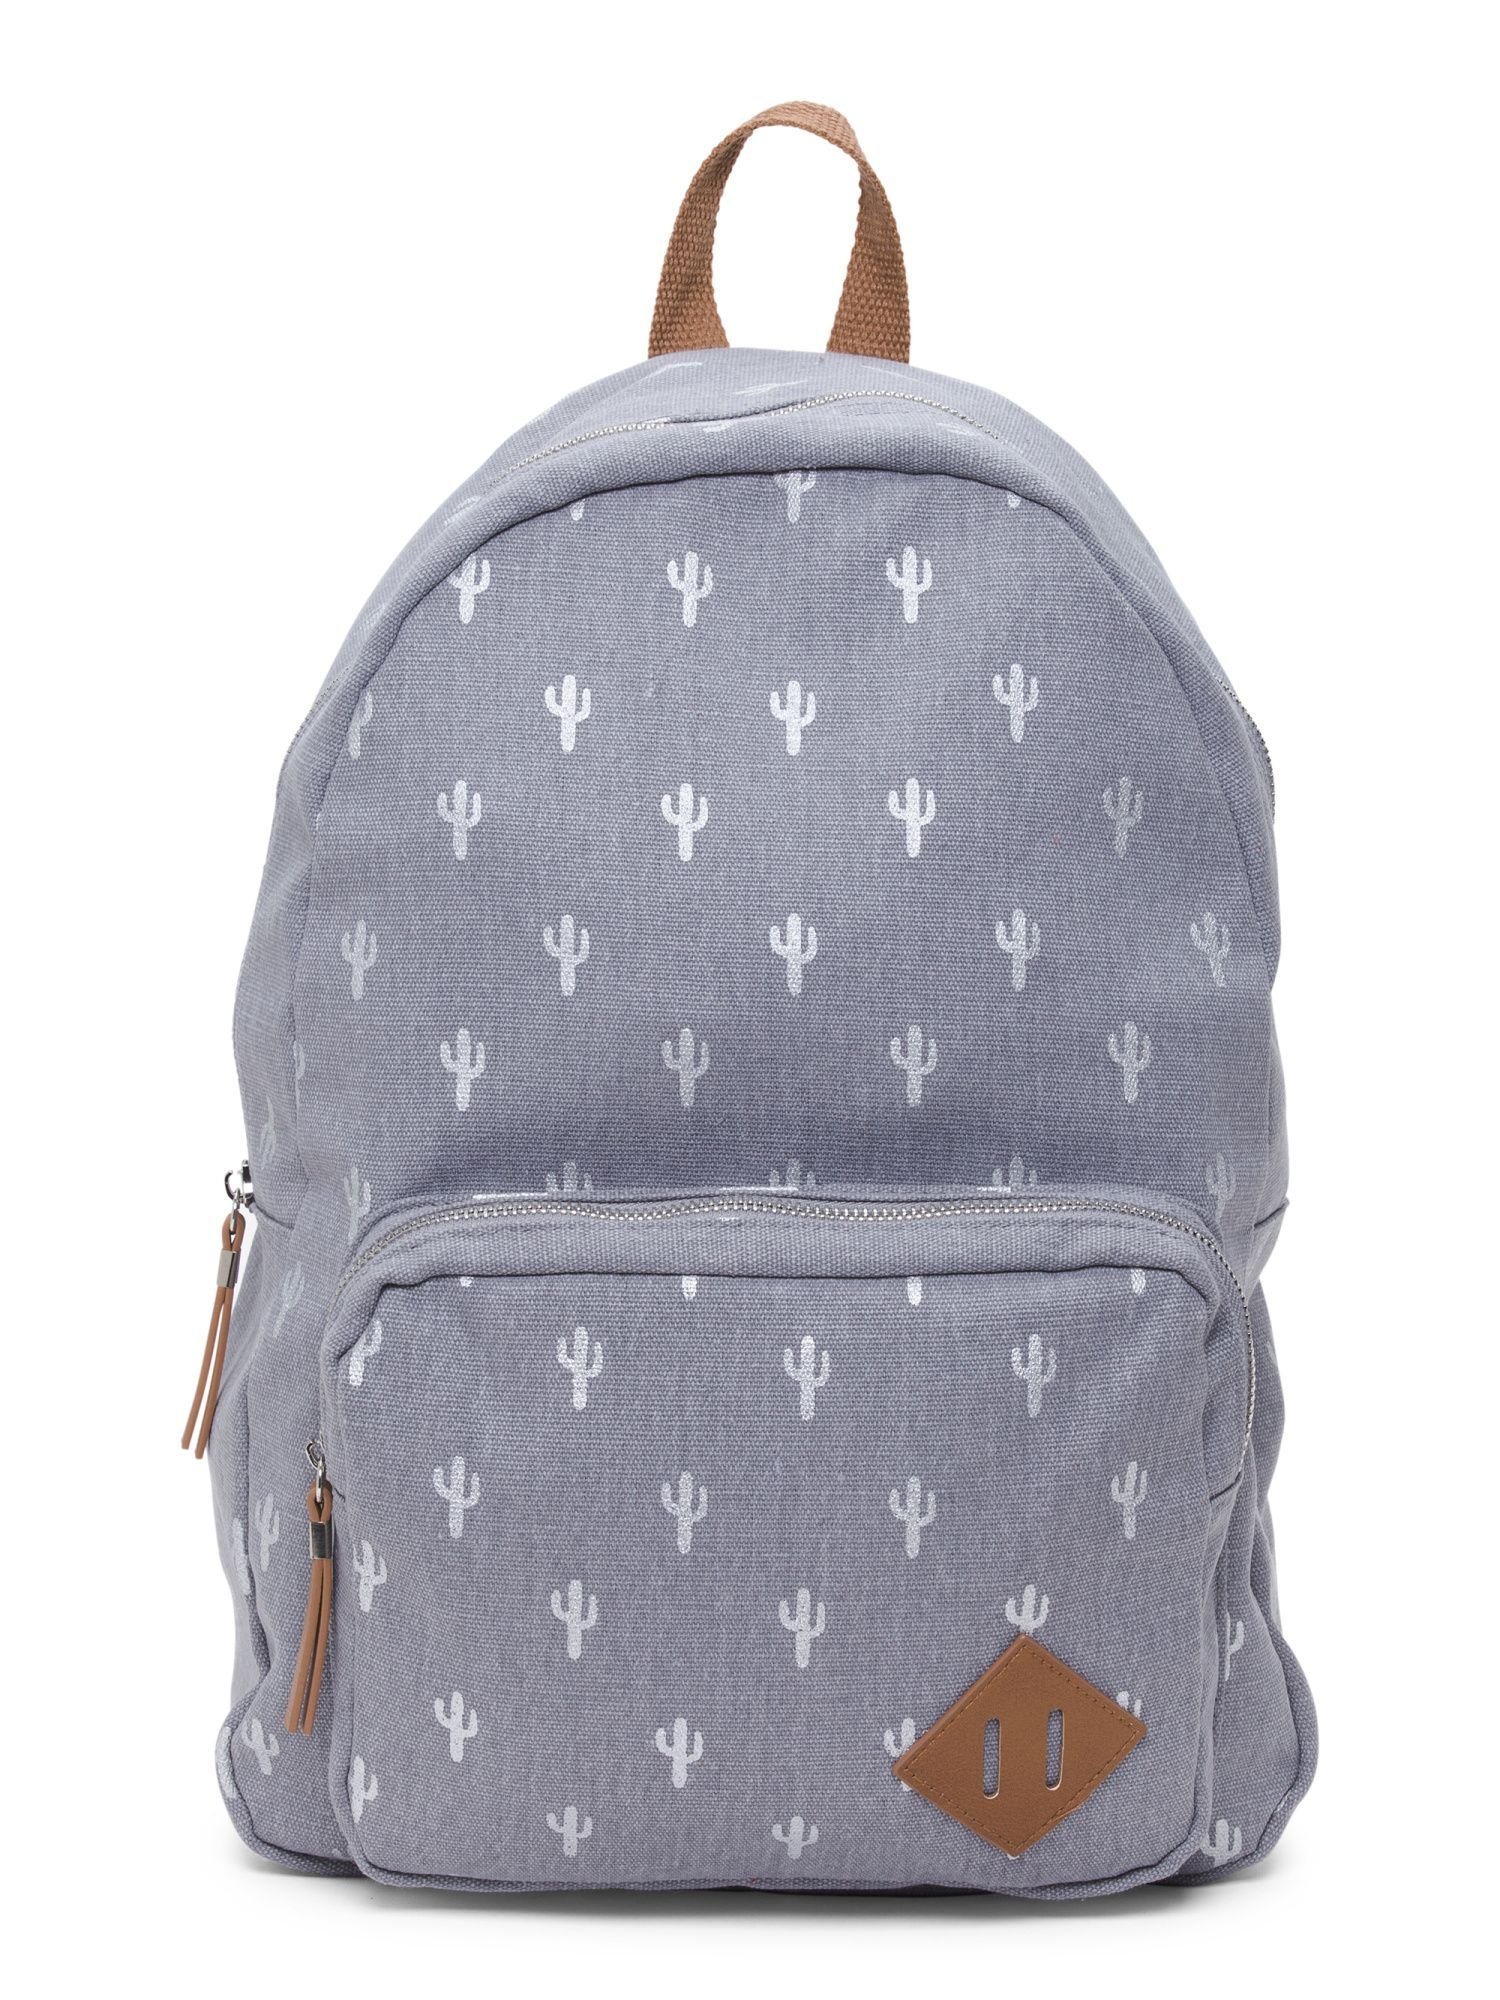 b19fef3543e6 Cactus Foil Print Canvas Backpack